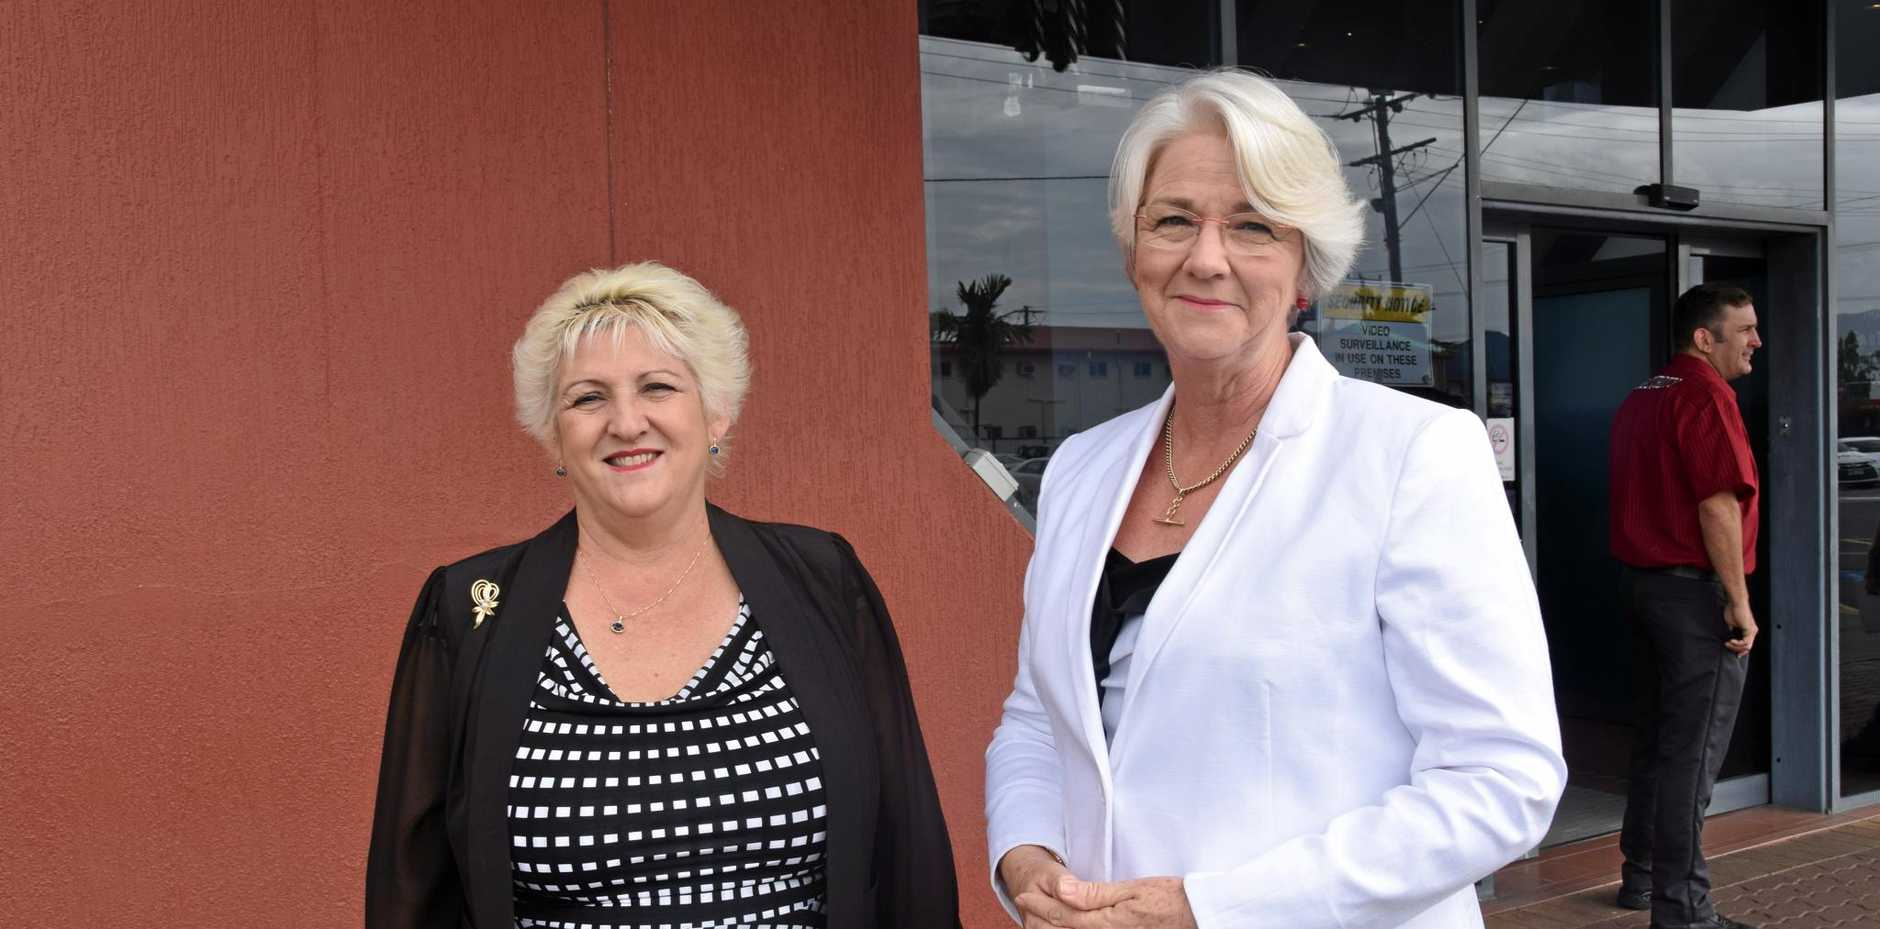 Capricornia MP Michelle Landry and Rockhampton Region mayor Margaret Strelow are both excited following the Adani business meeting.